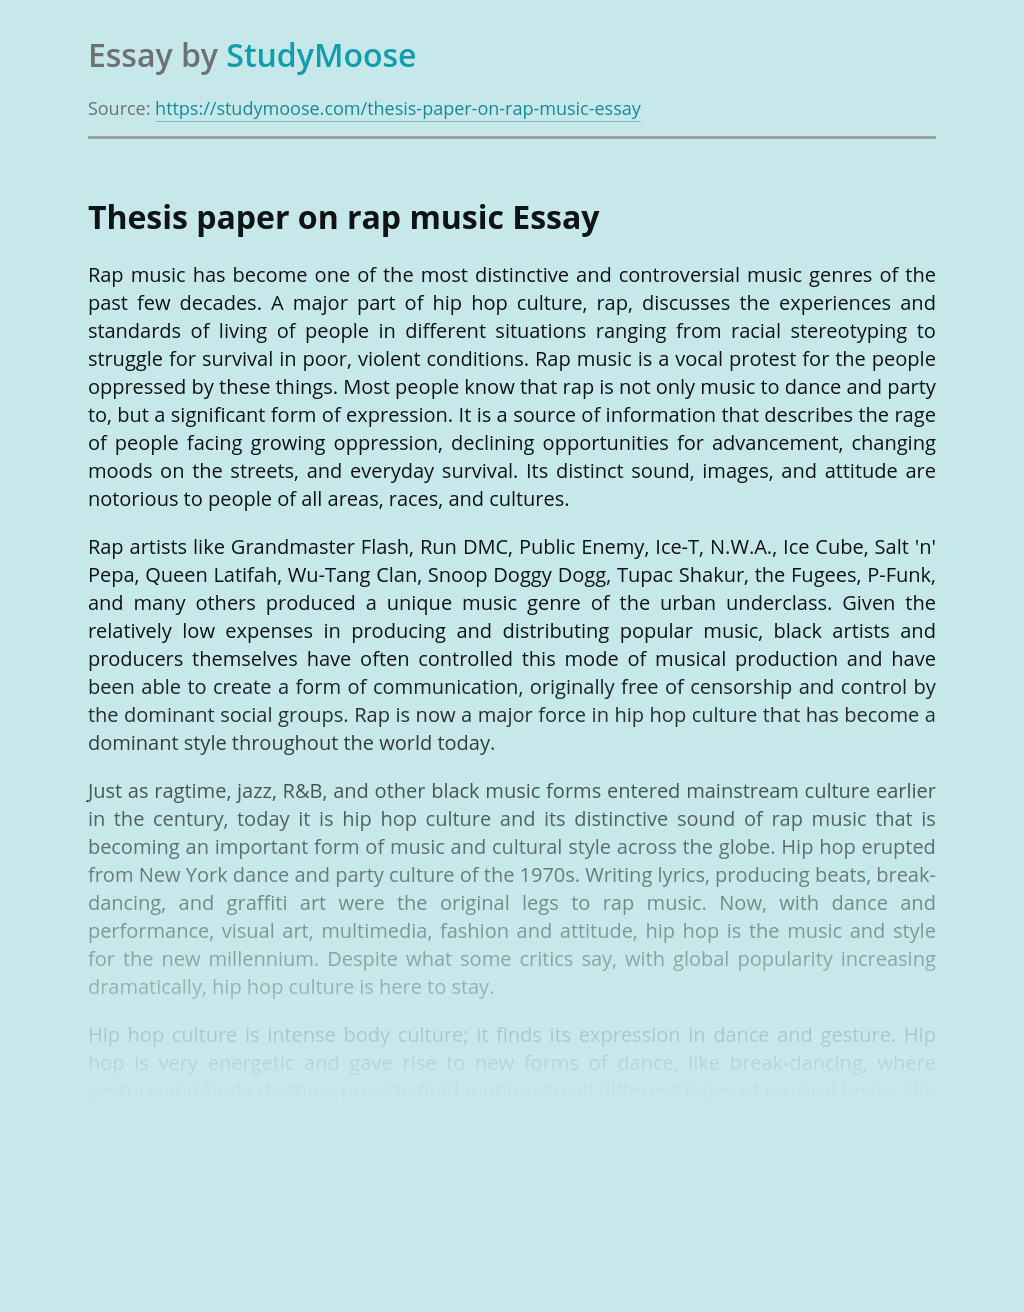 Thesis paper on rap music